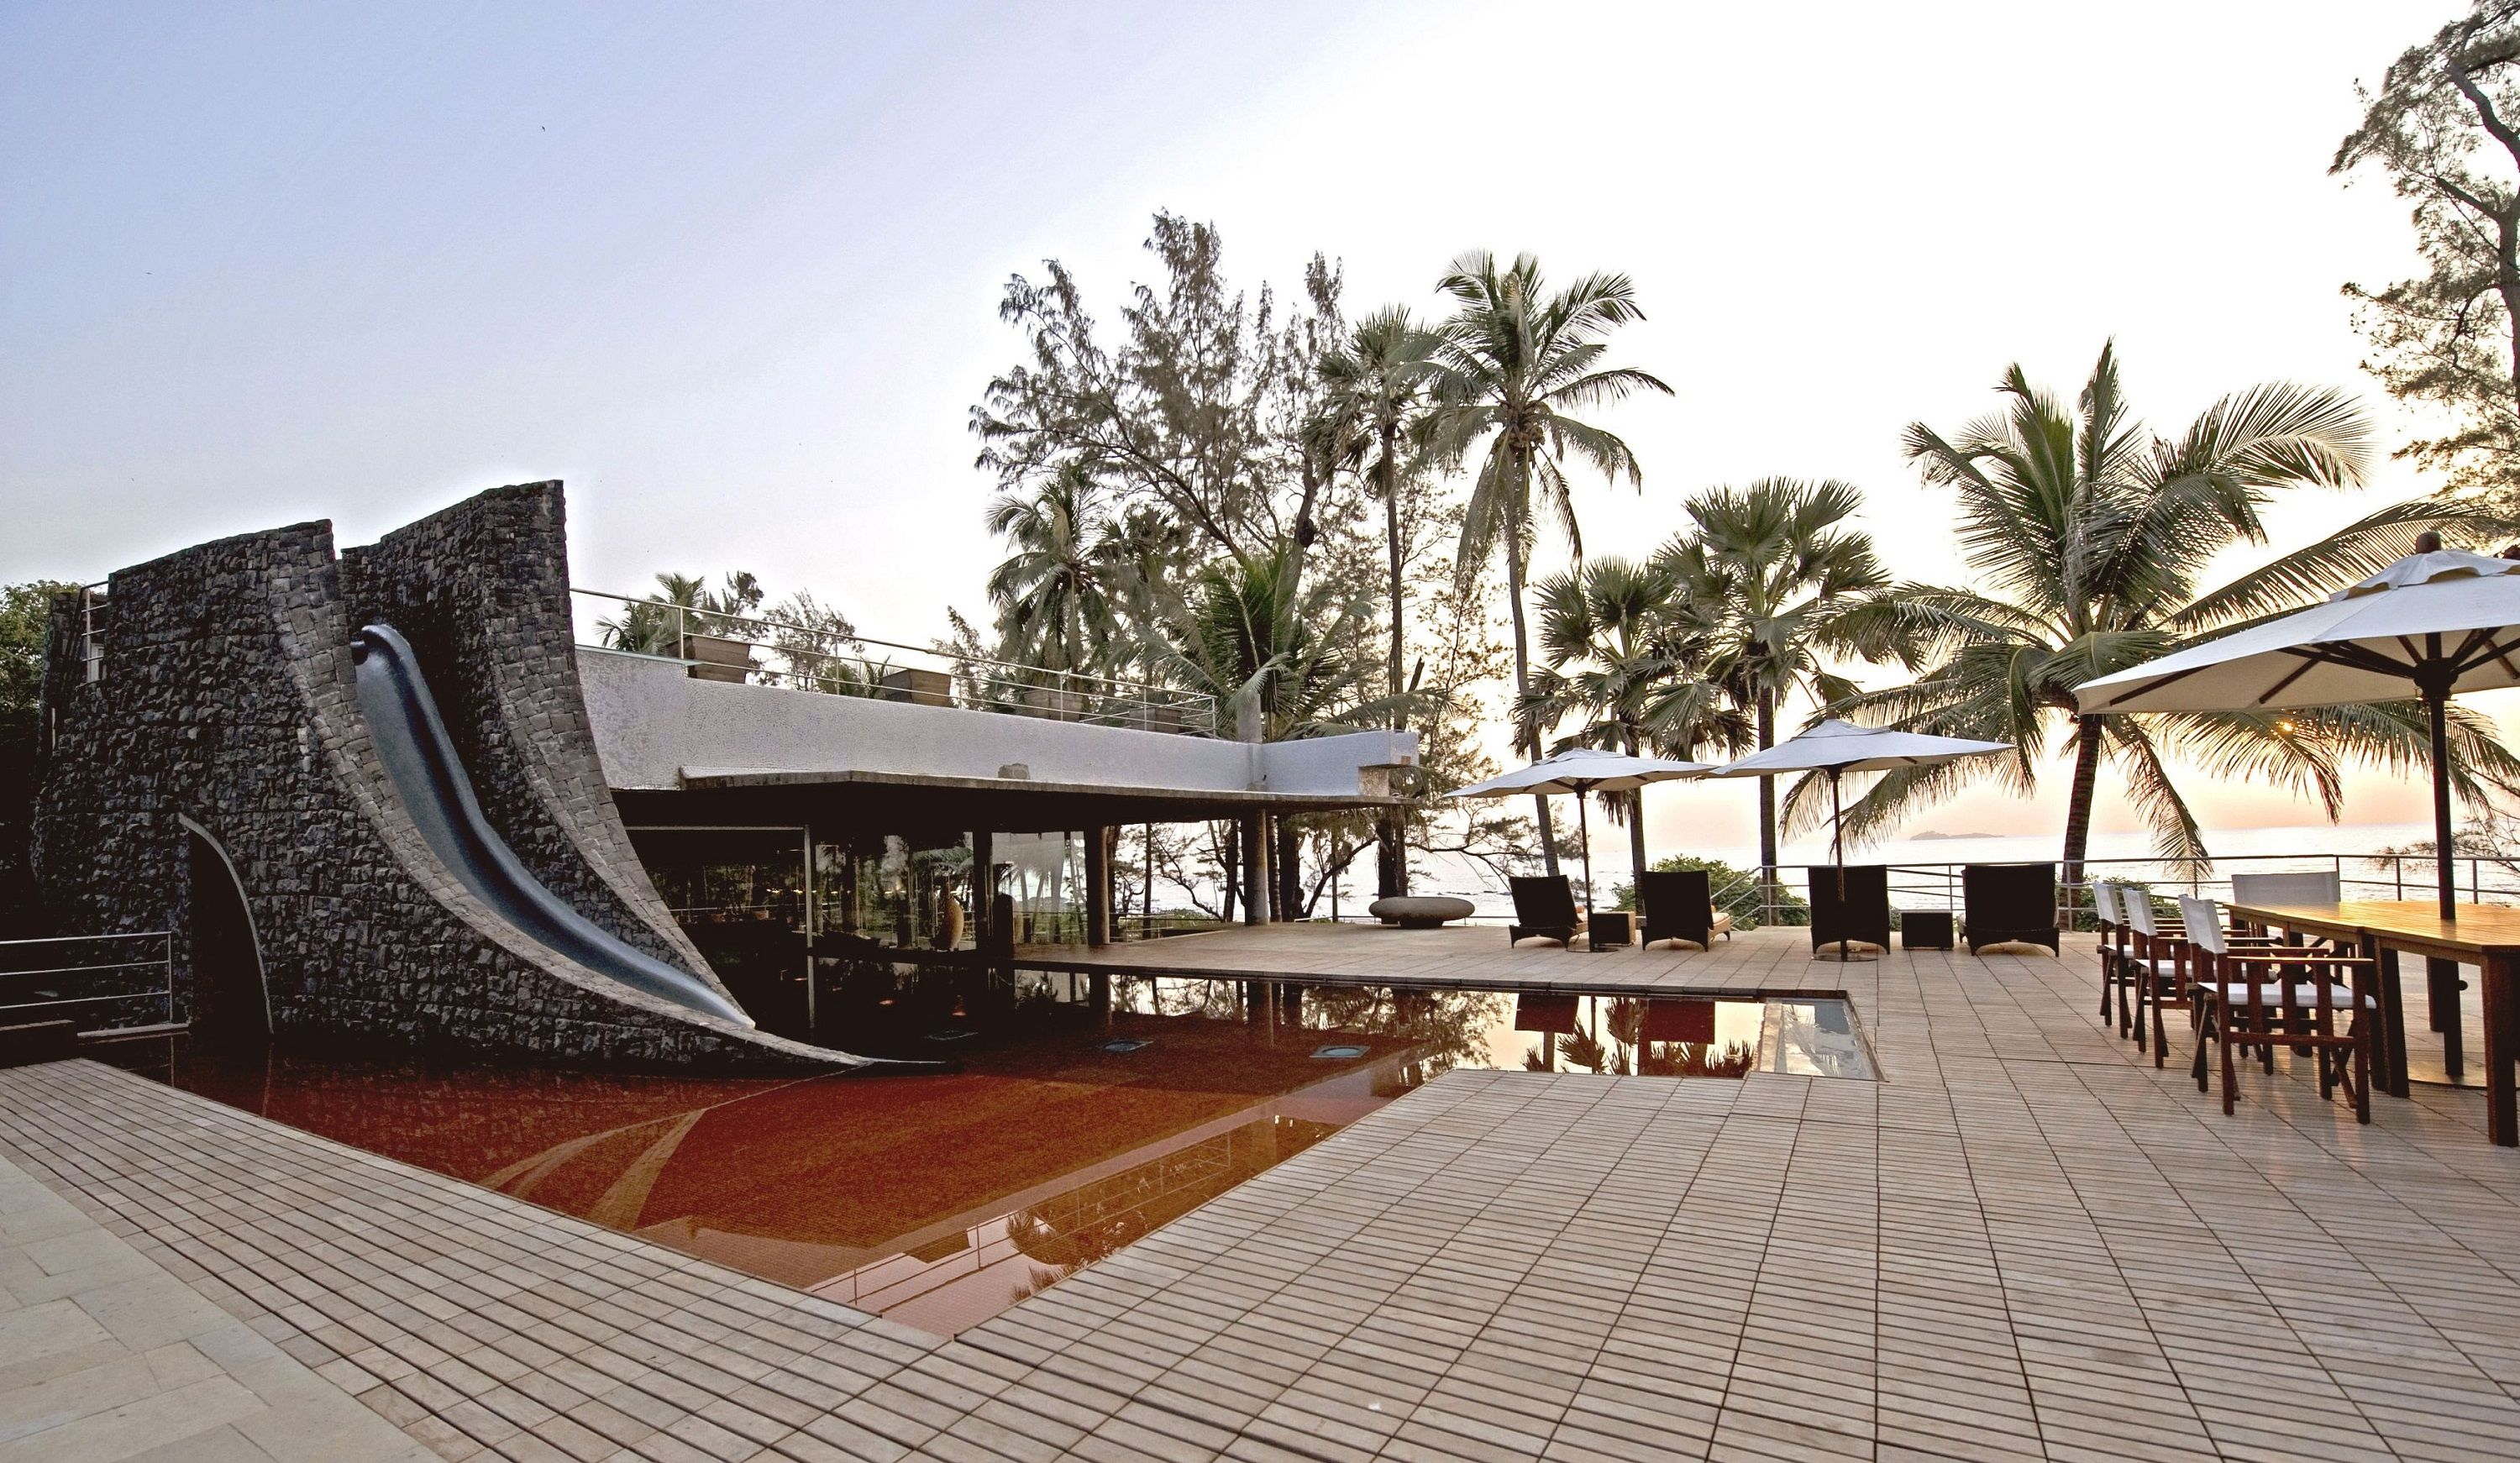 Architecture Design India architecture and interior design projects in india - weekend house